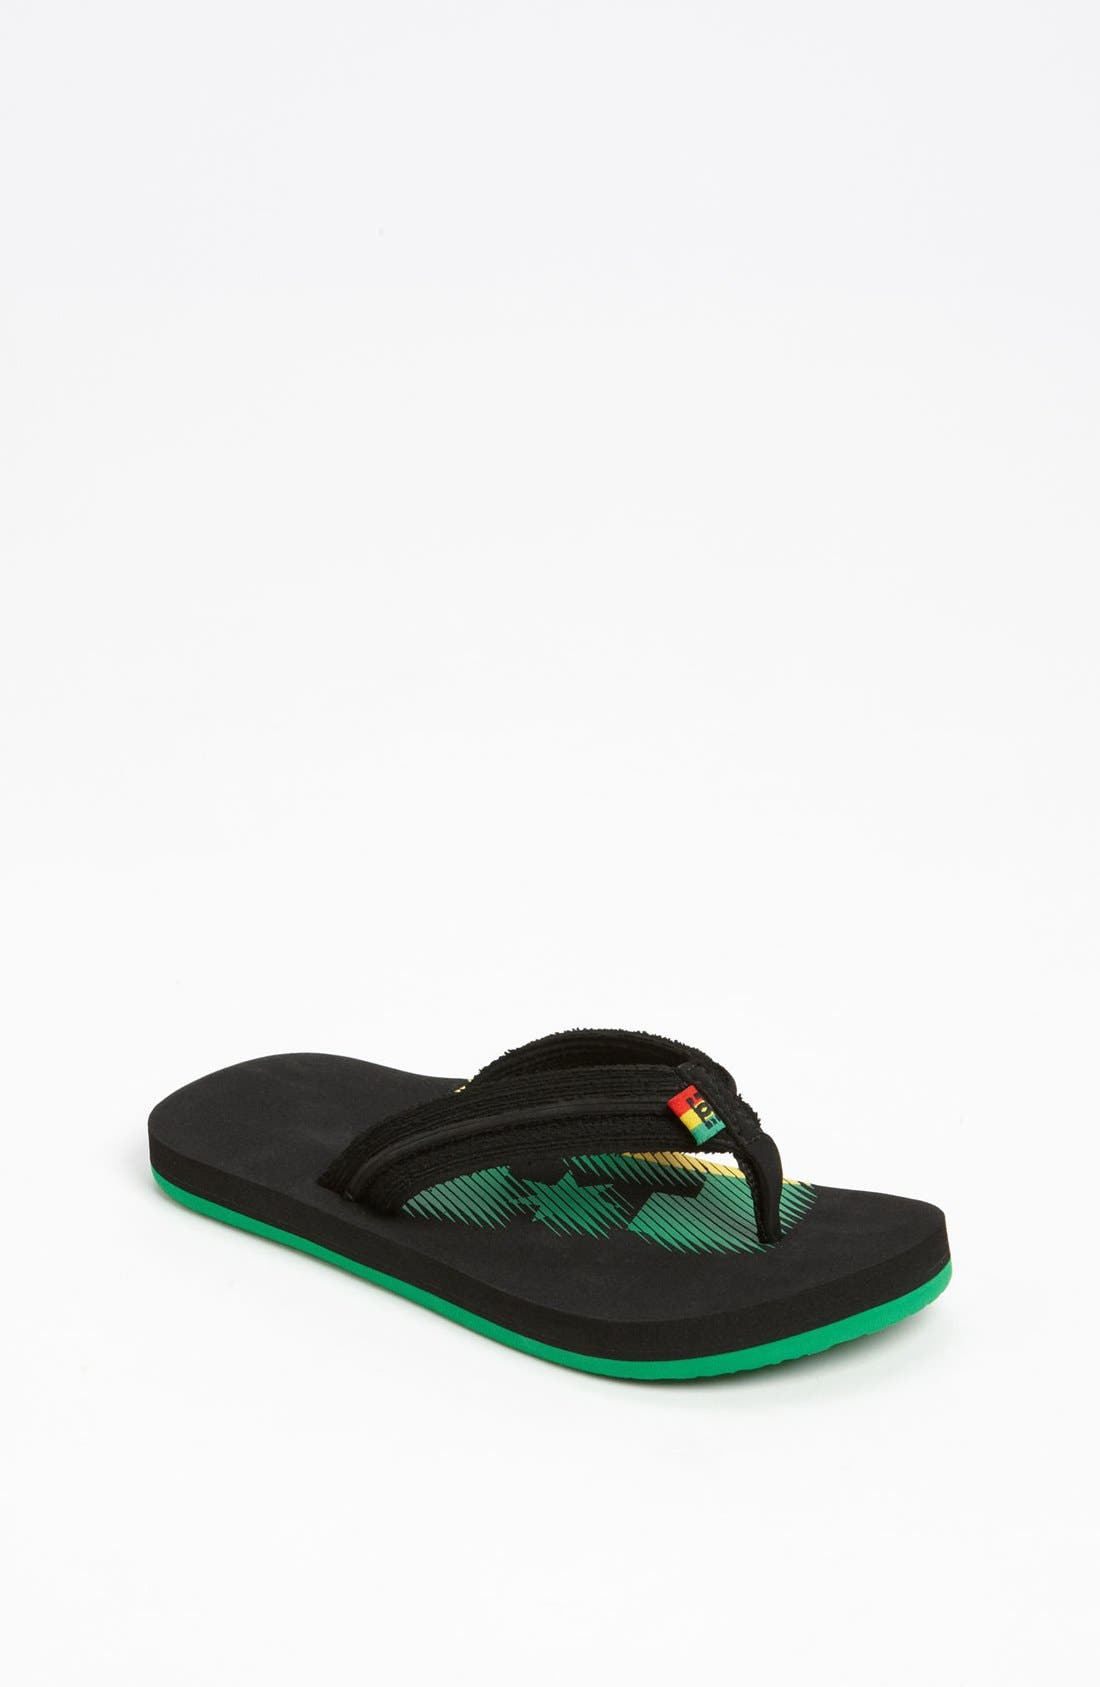 Main Image - DC Shoes 'Central' Sandal (Toddler, Little Kid & Big Kid)